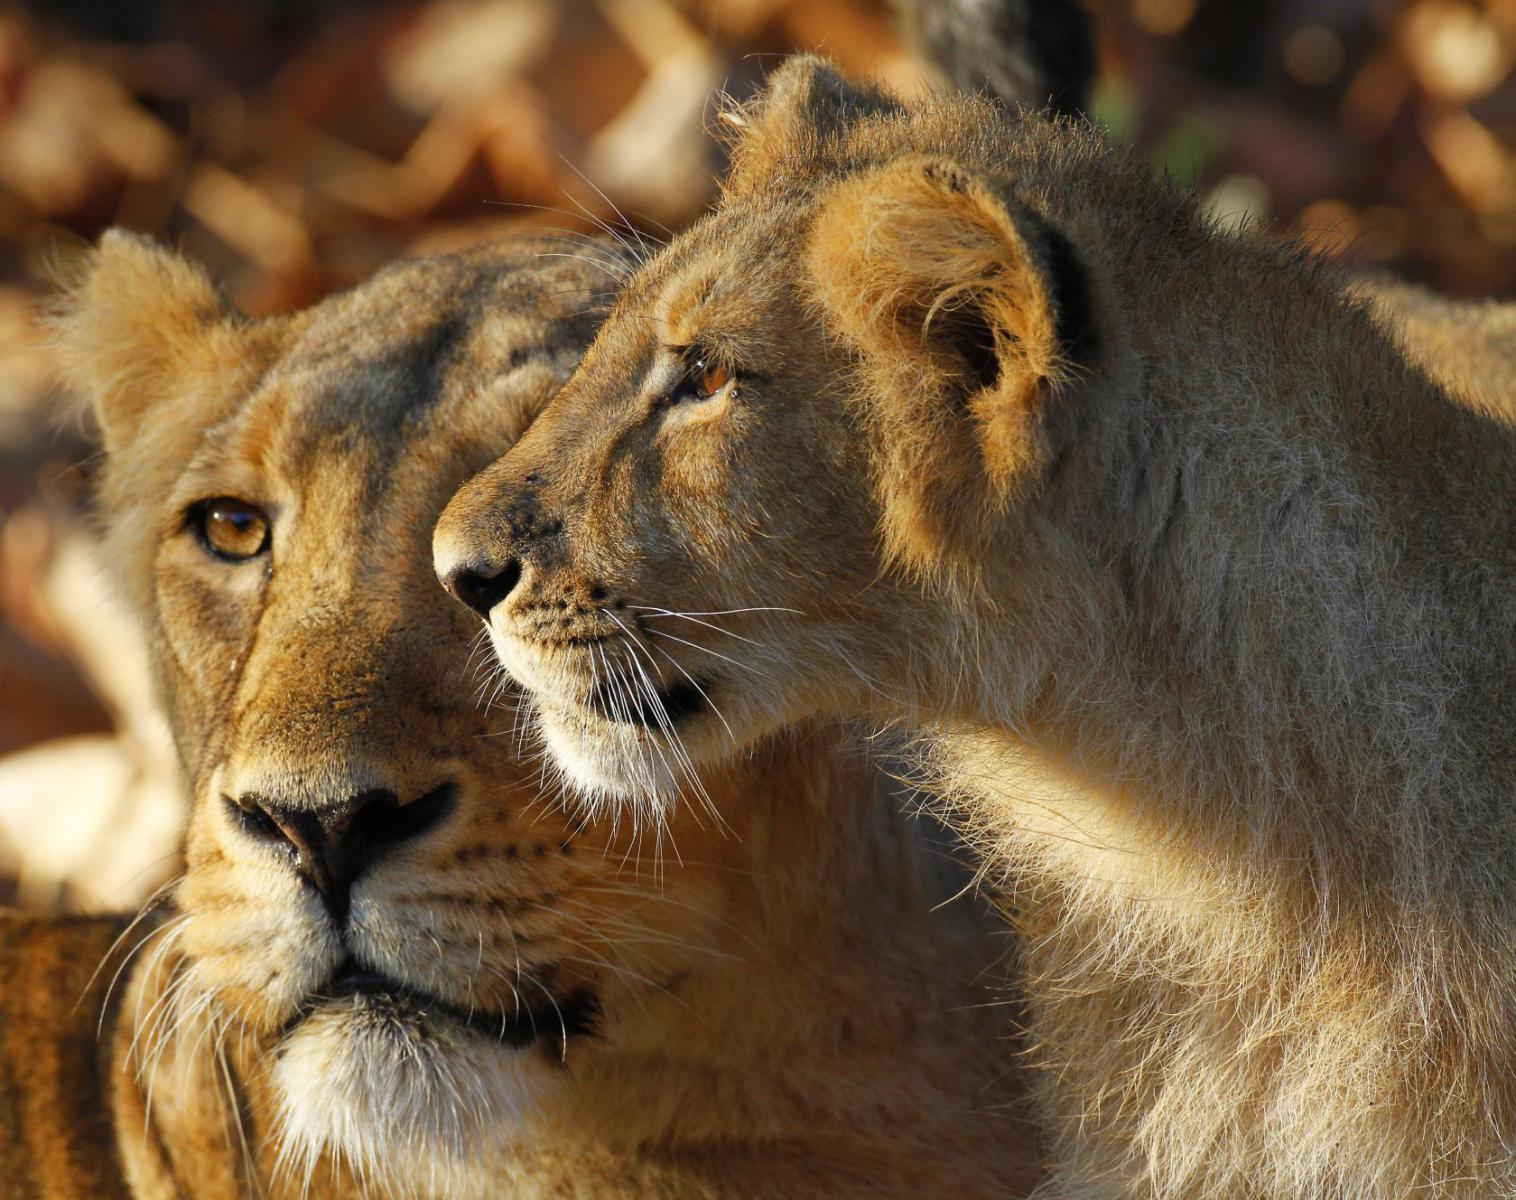 Inde  Lions d'Asie, tigres et loups indiens   Photo Observation nature Safari